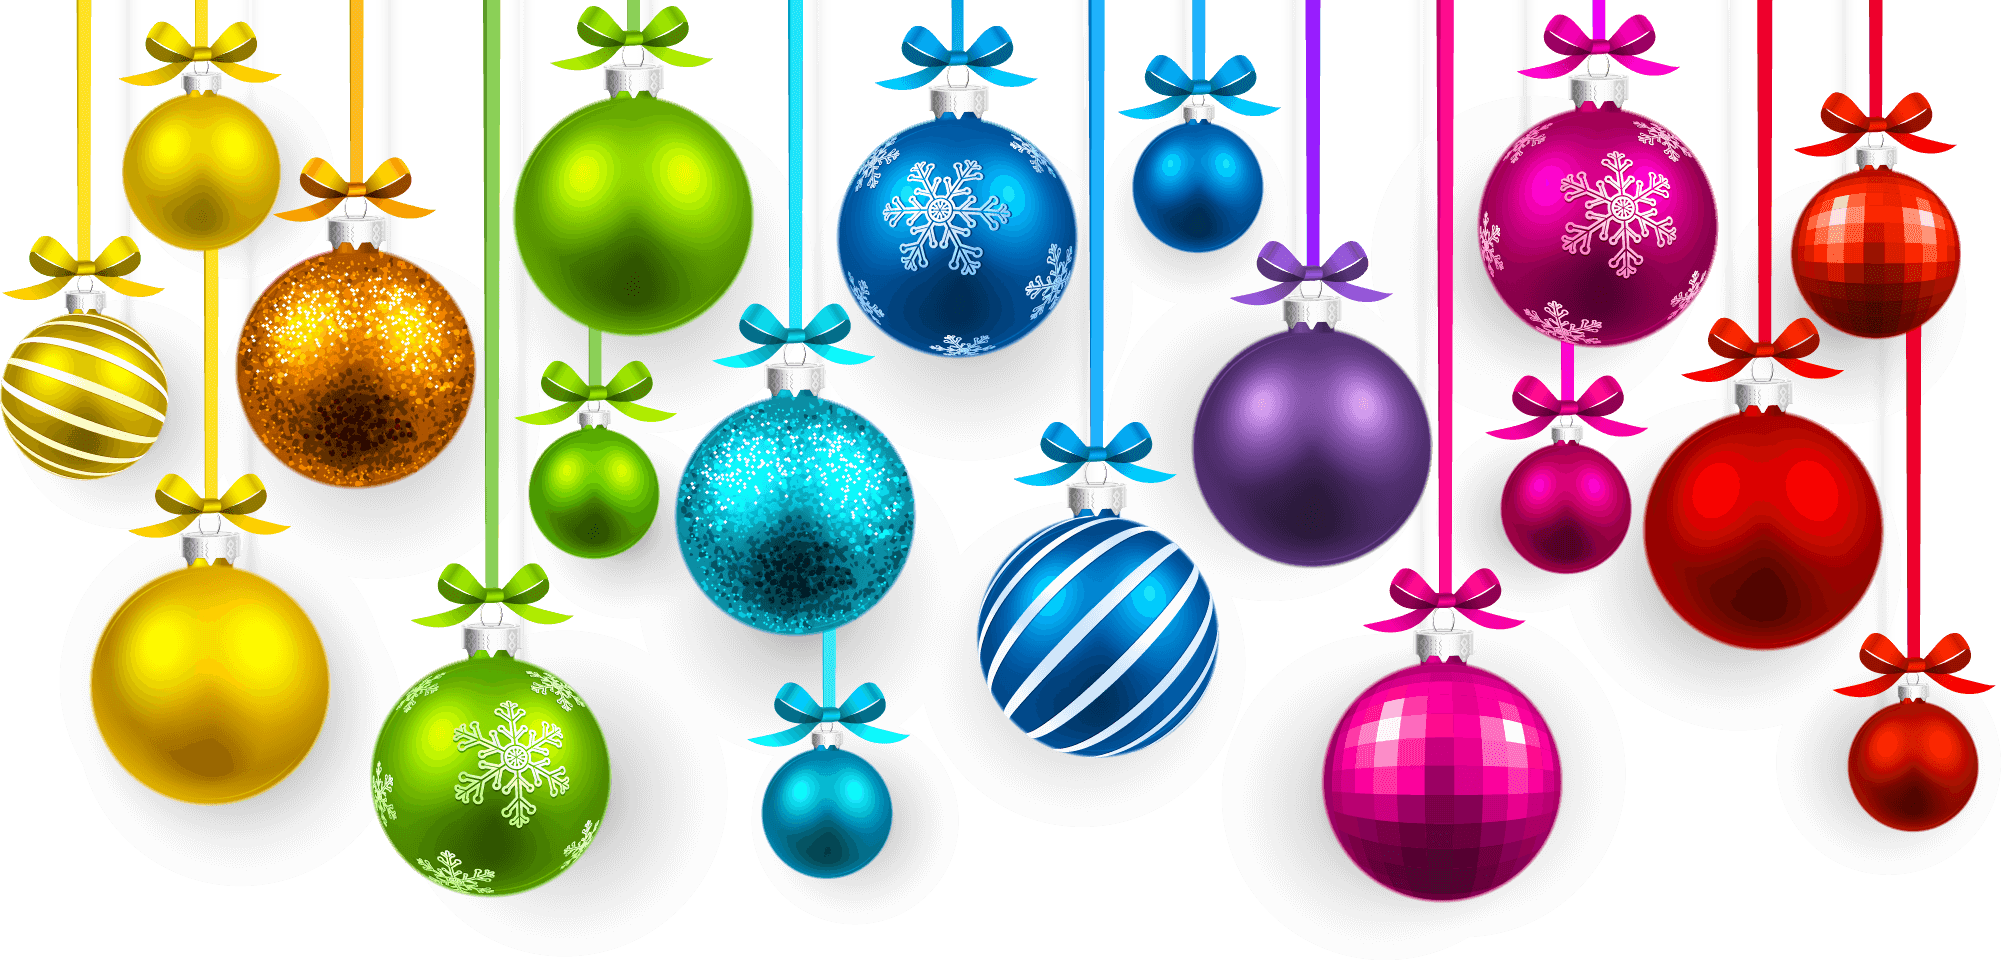 Ornaments clipart craft. Holiday day decpa